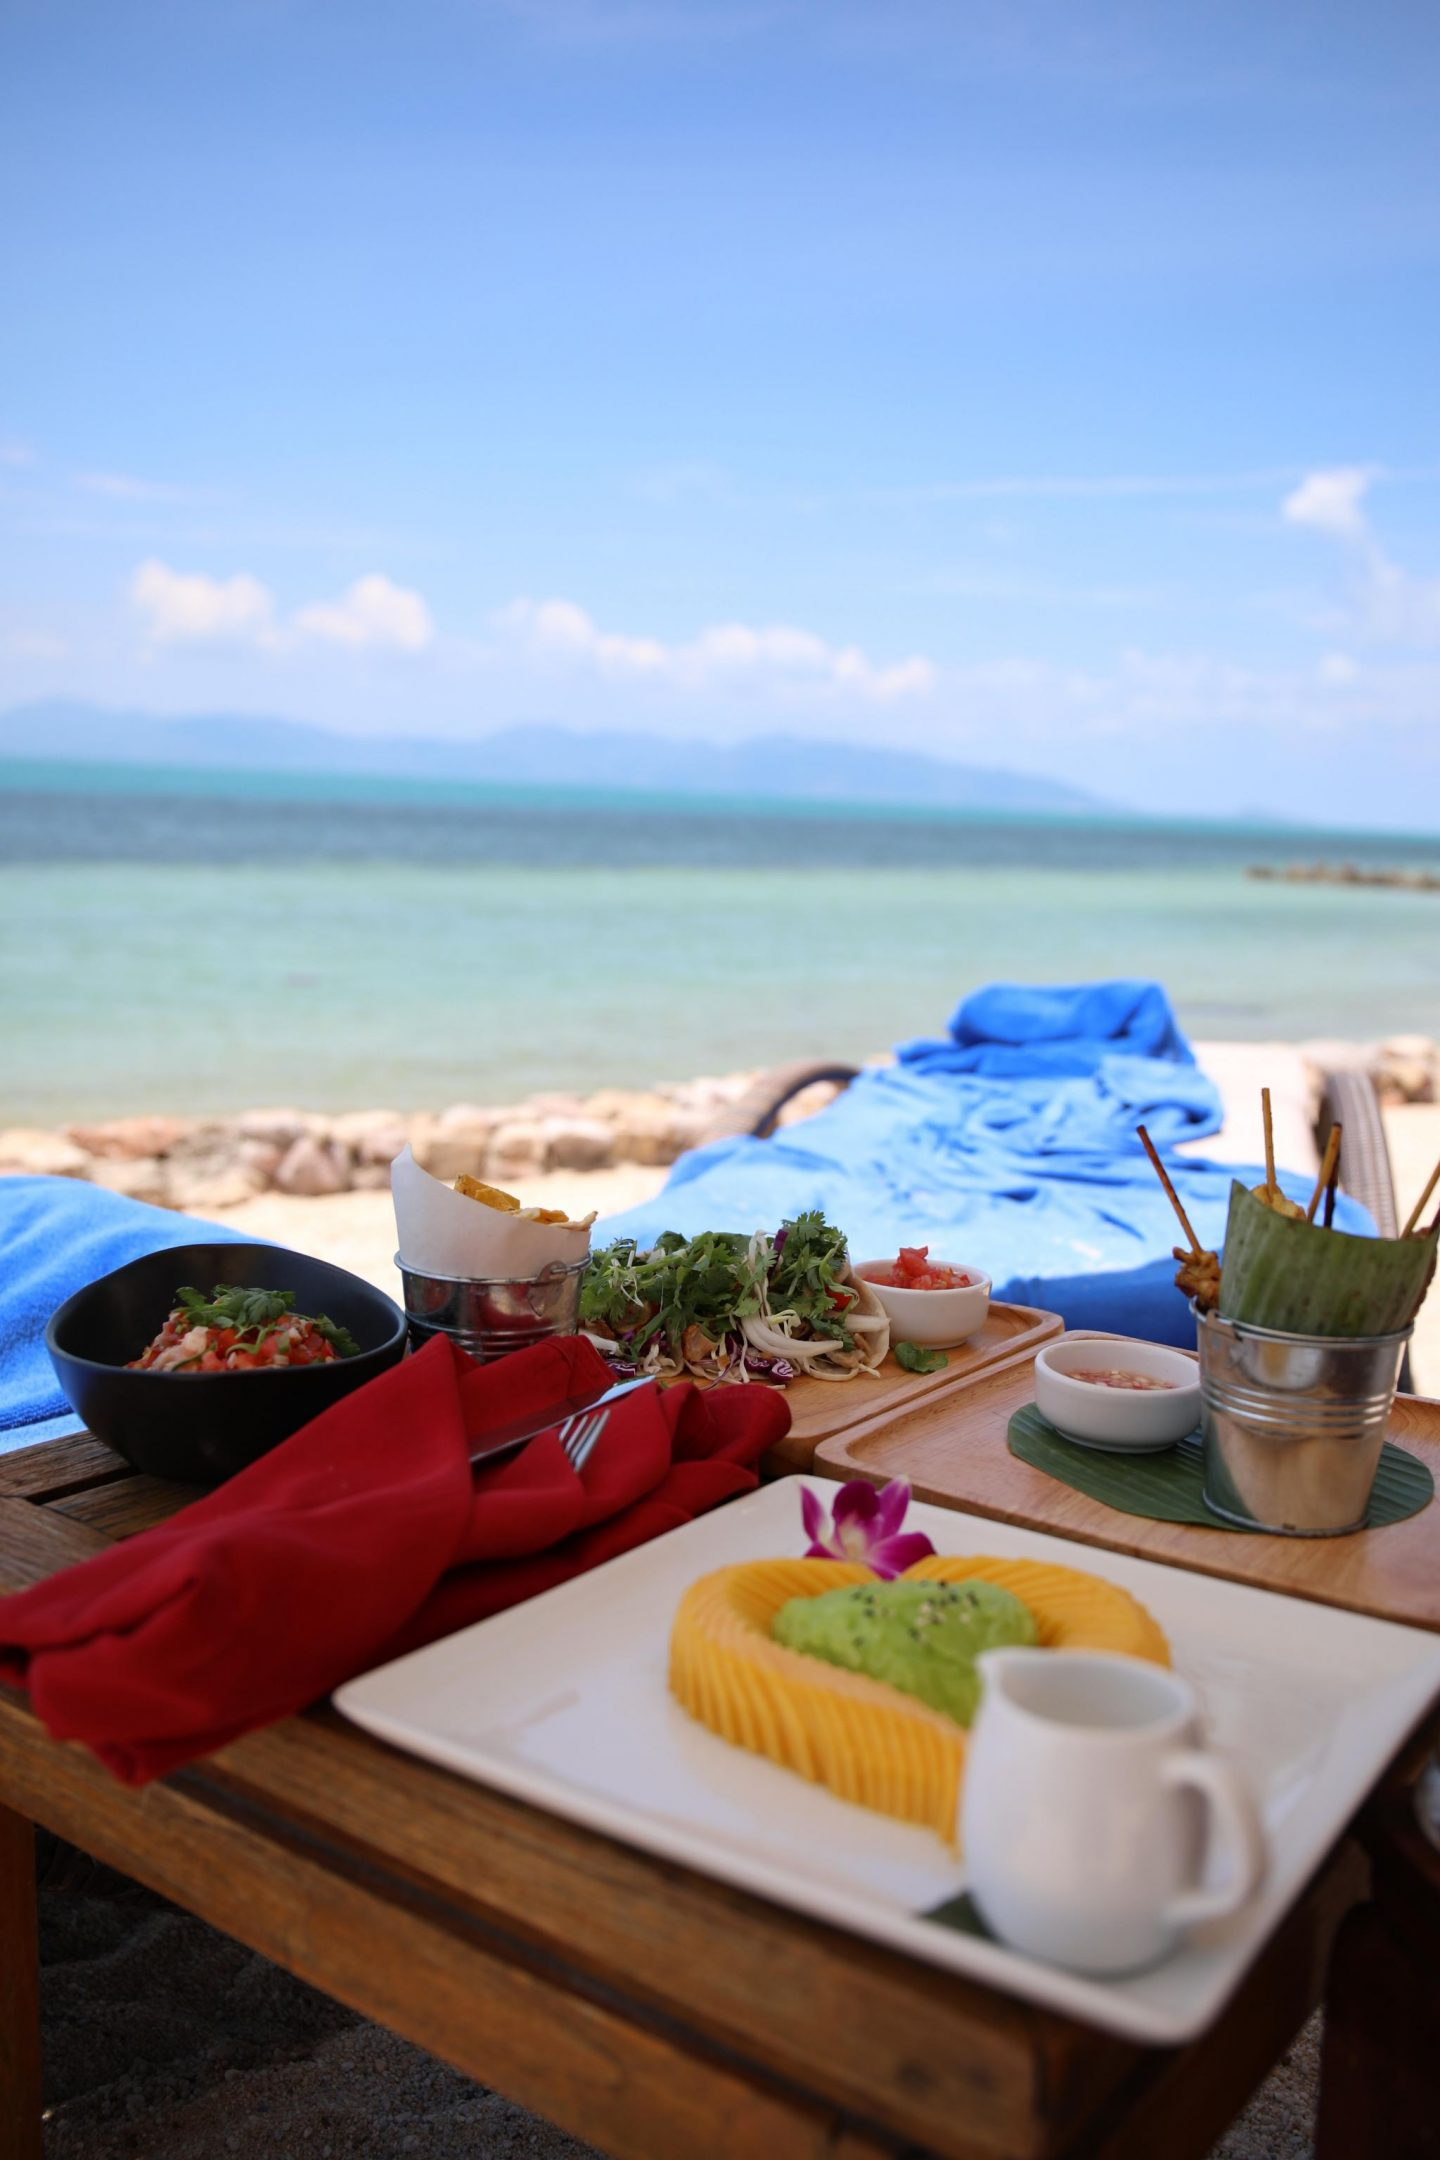 Lunch on the beach at The Belmond Napasai in Koh Samui Thailand, Katie KALANCHOE